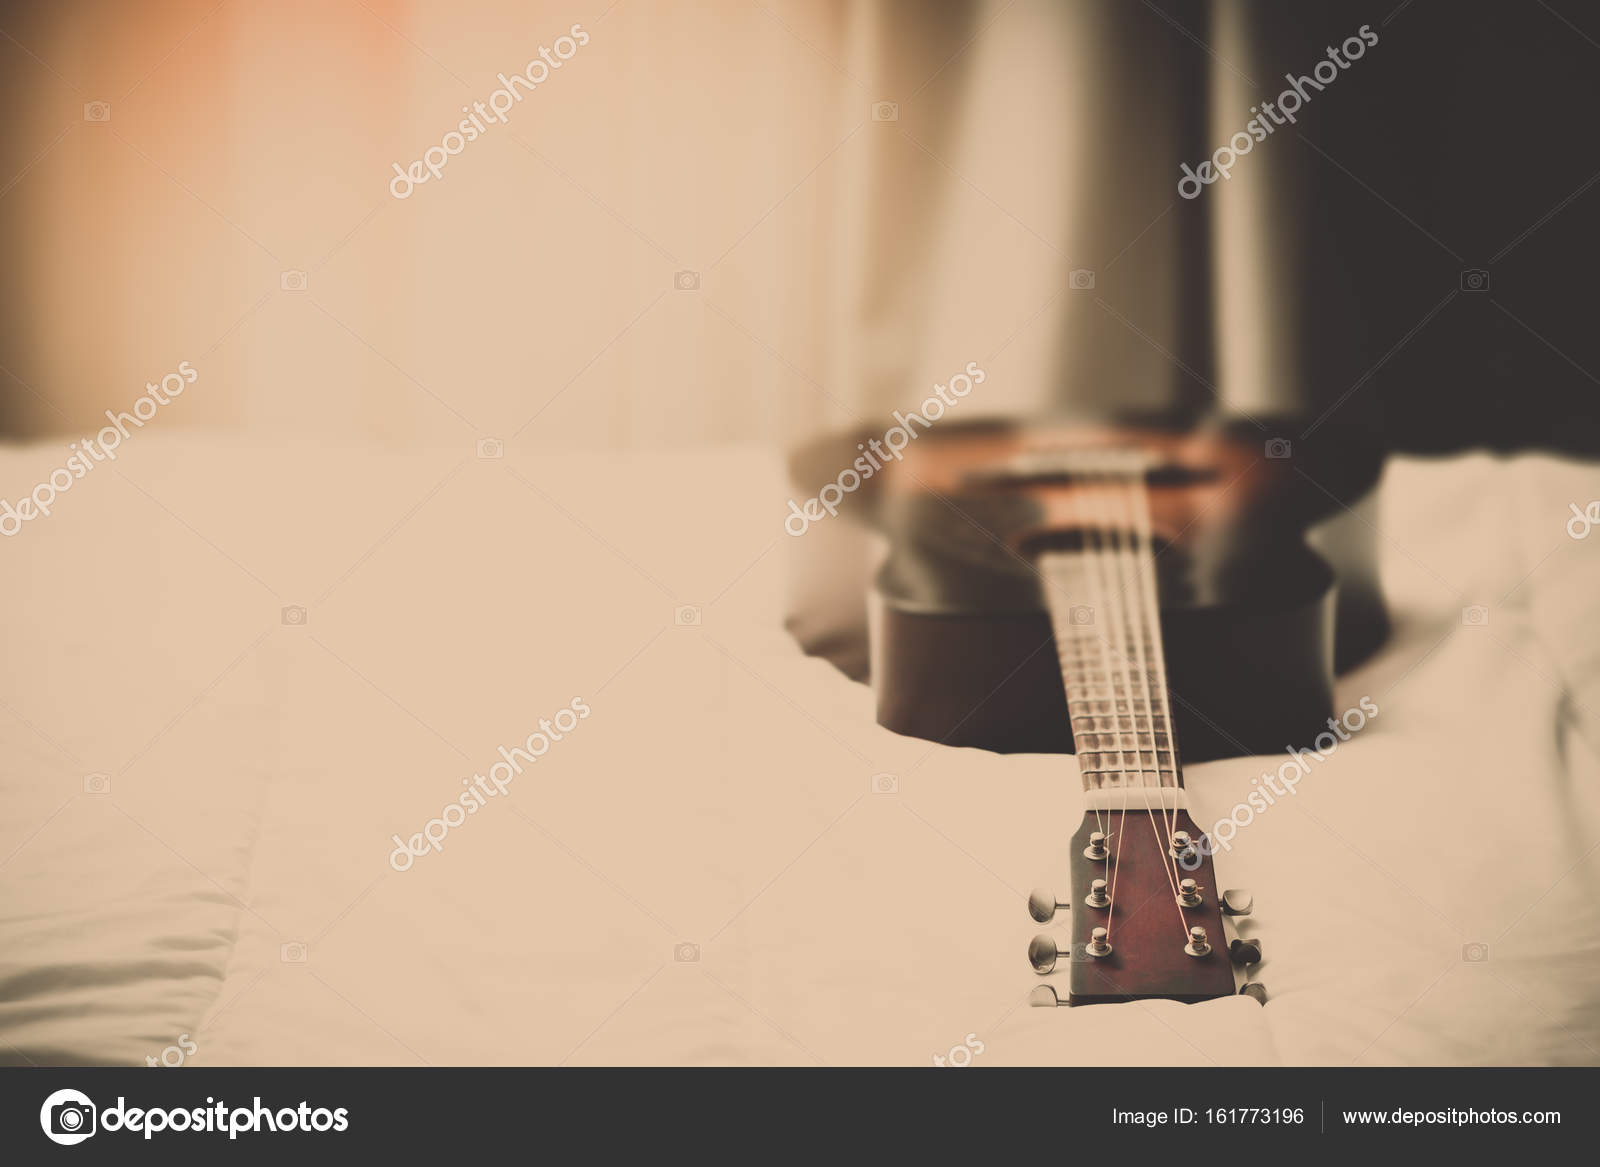 Acoustic Guitar On Bed In The Morning Vintage Filter Stock Photo